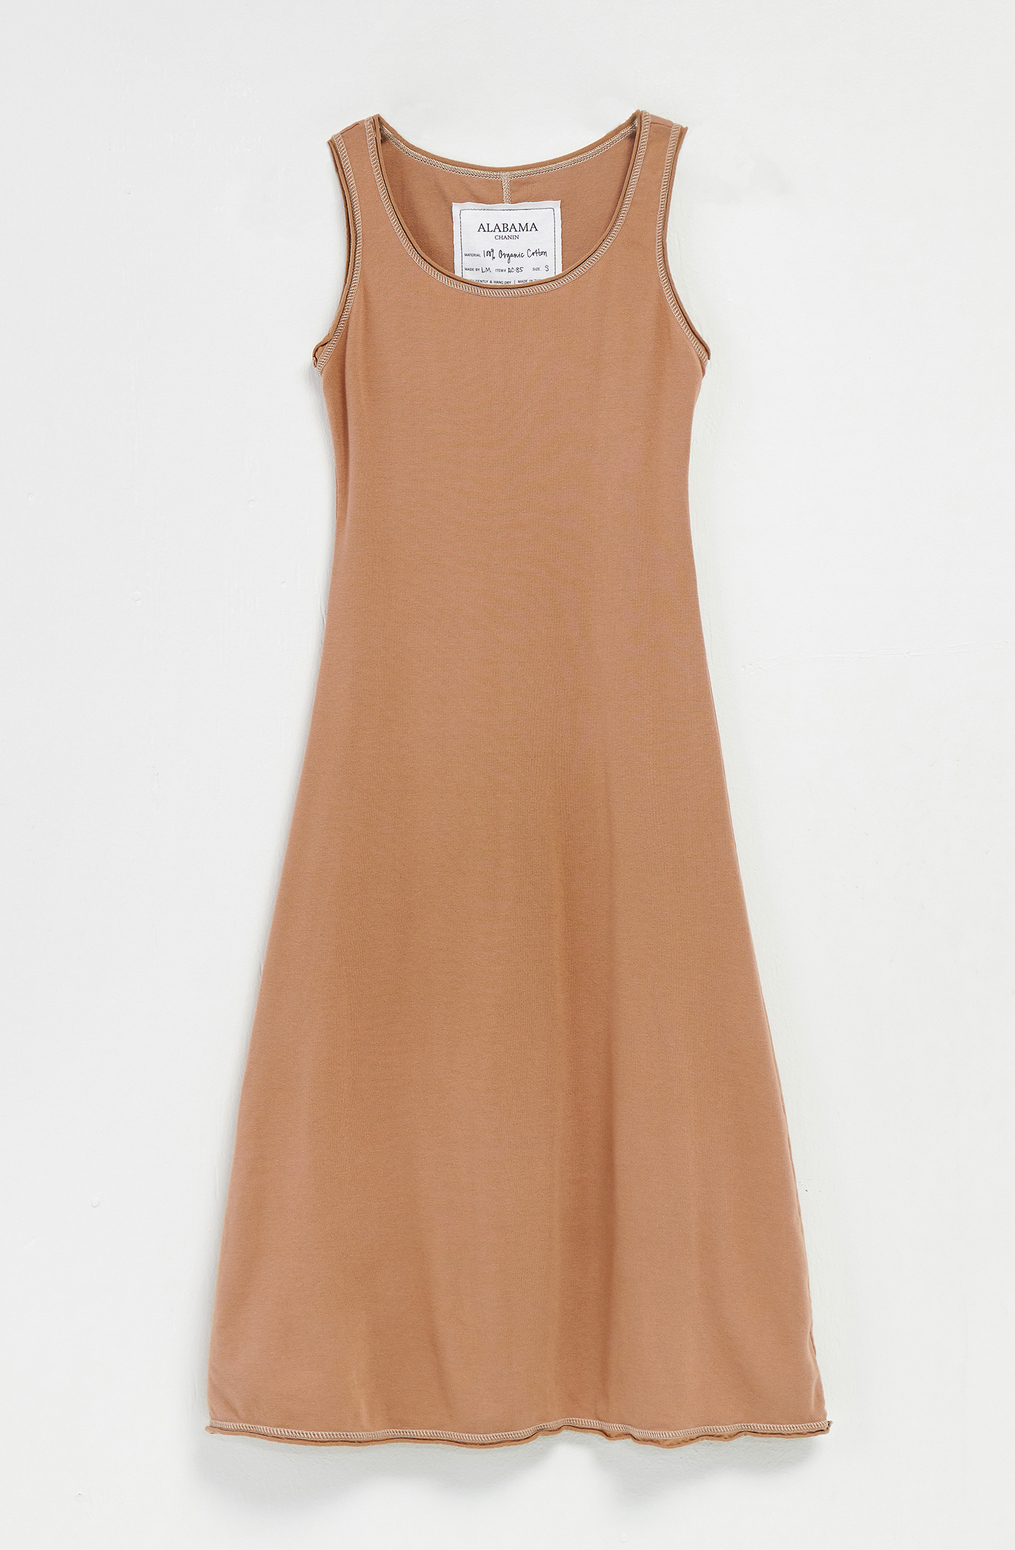 Alabama chanin leisure slip dress1